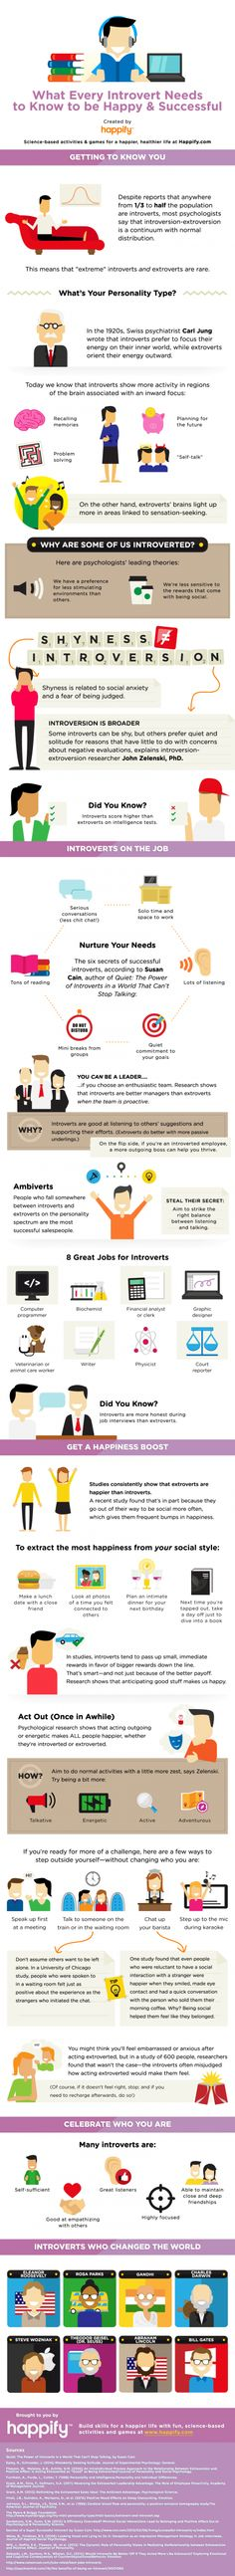 what-every-introvert-needs-know-be-happy-successful.png (450×4936)